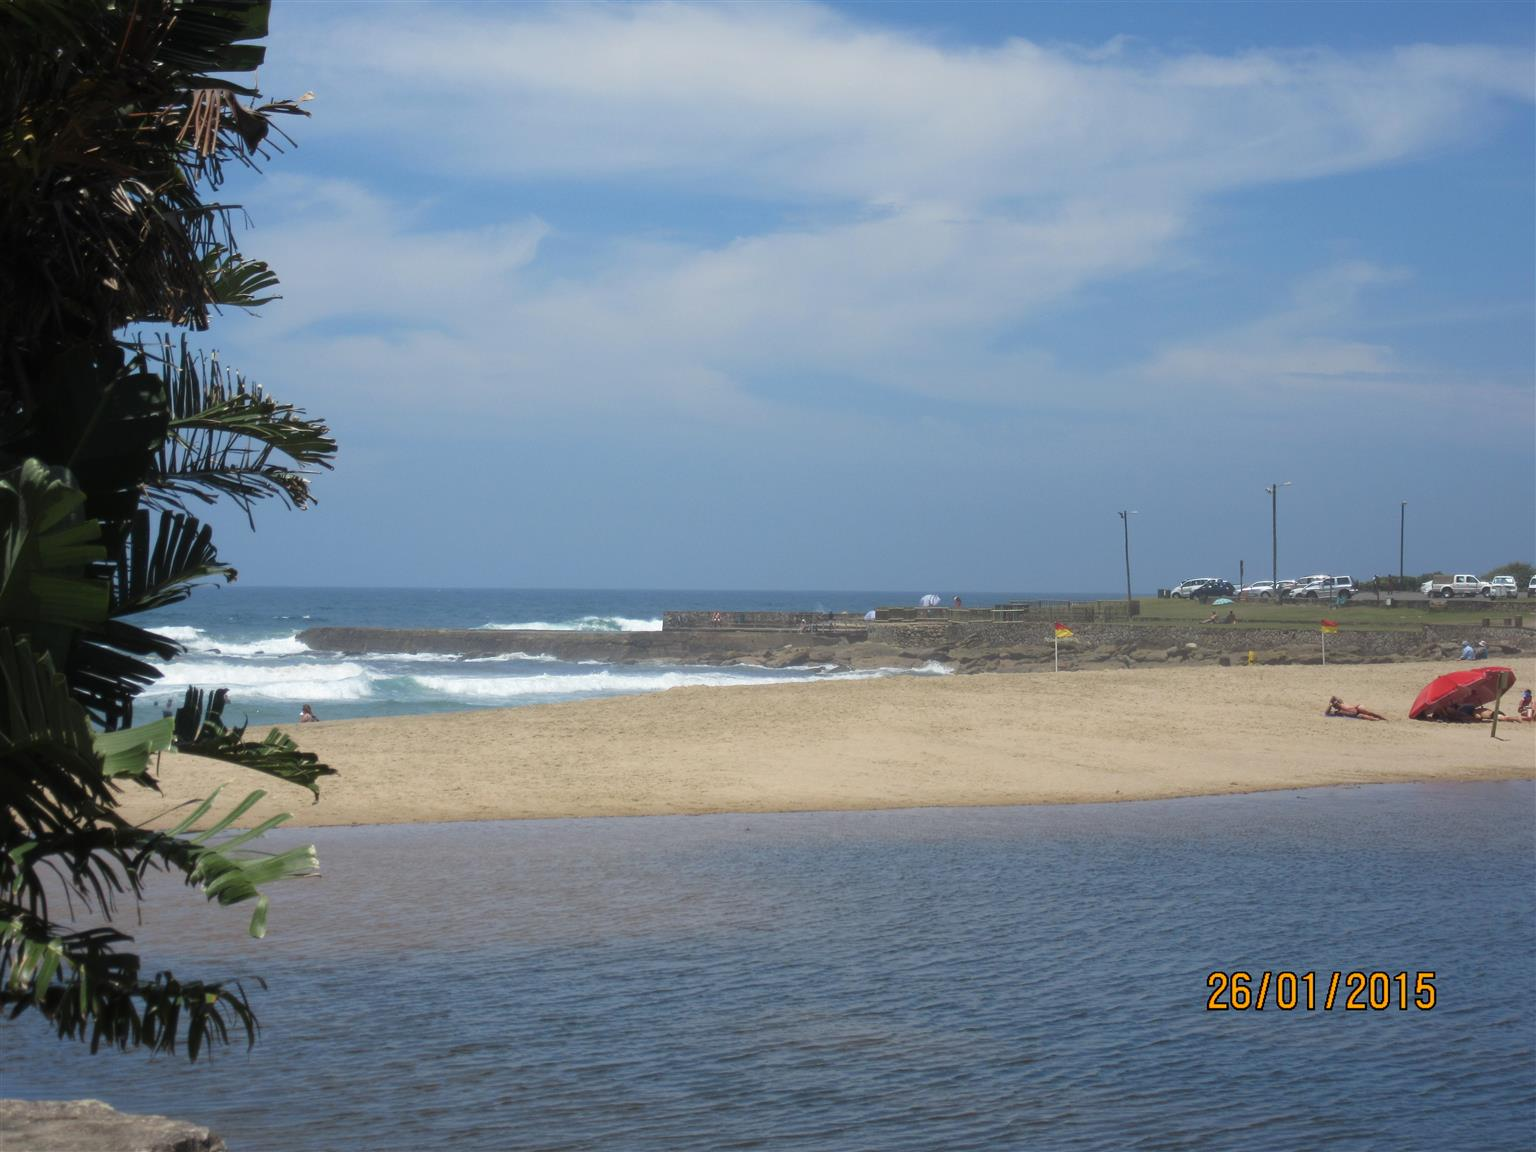 SHELLY BEACH PAY FOR 5 OOS NIGHTS, STAY FOR 7 - R290 PN FOR 2 GUESTS SELF-CATER HOLIDAY FLATS UVONGO